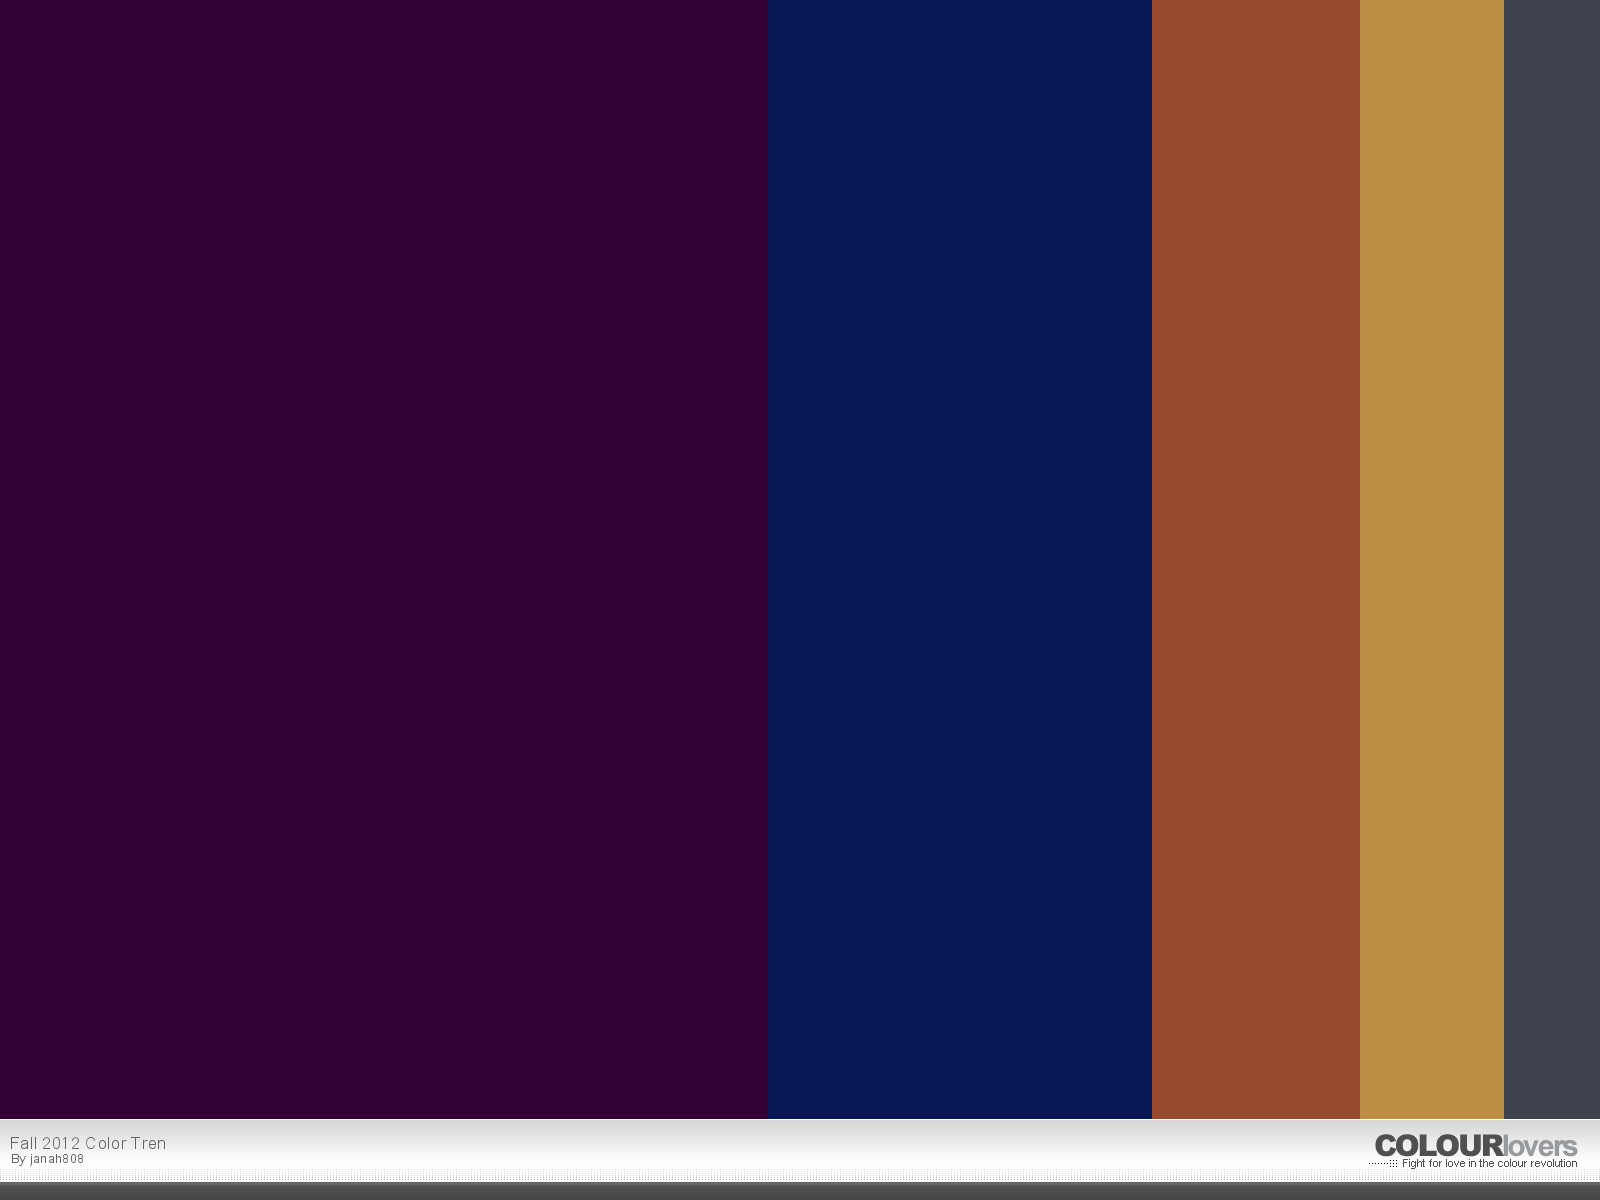 August wrinkle august 2012 - Burgundy and blue color scheme ...